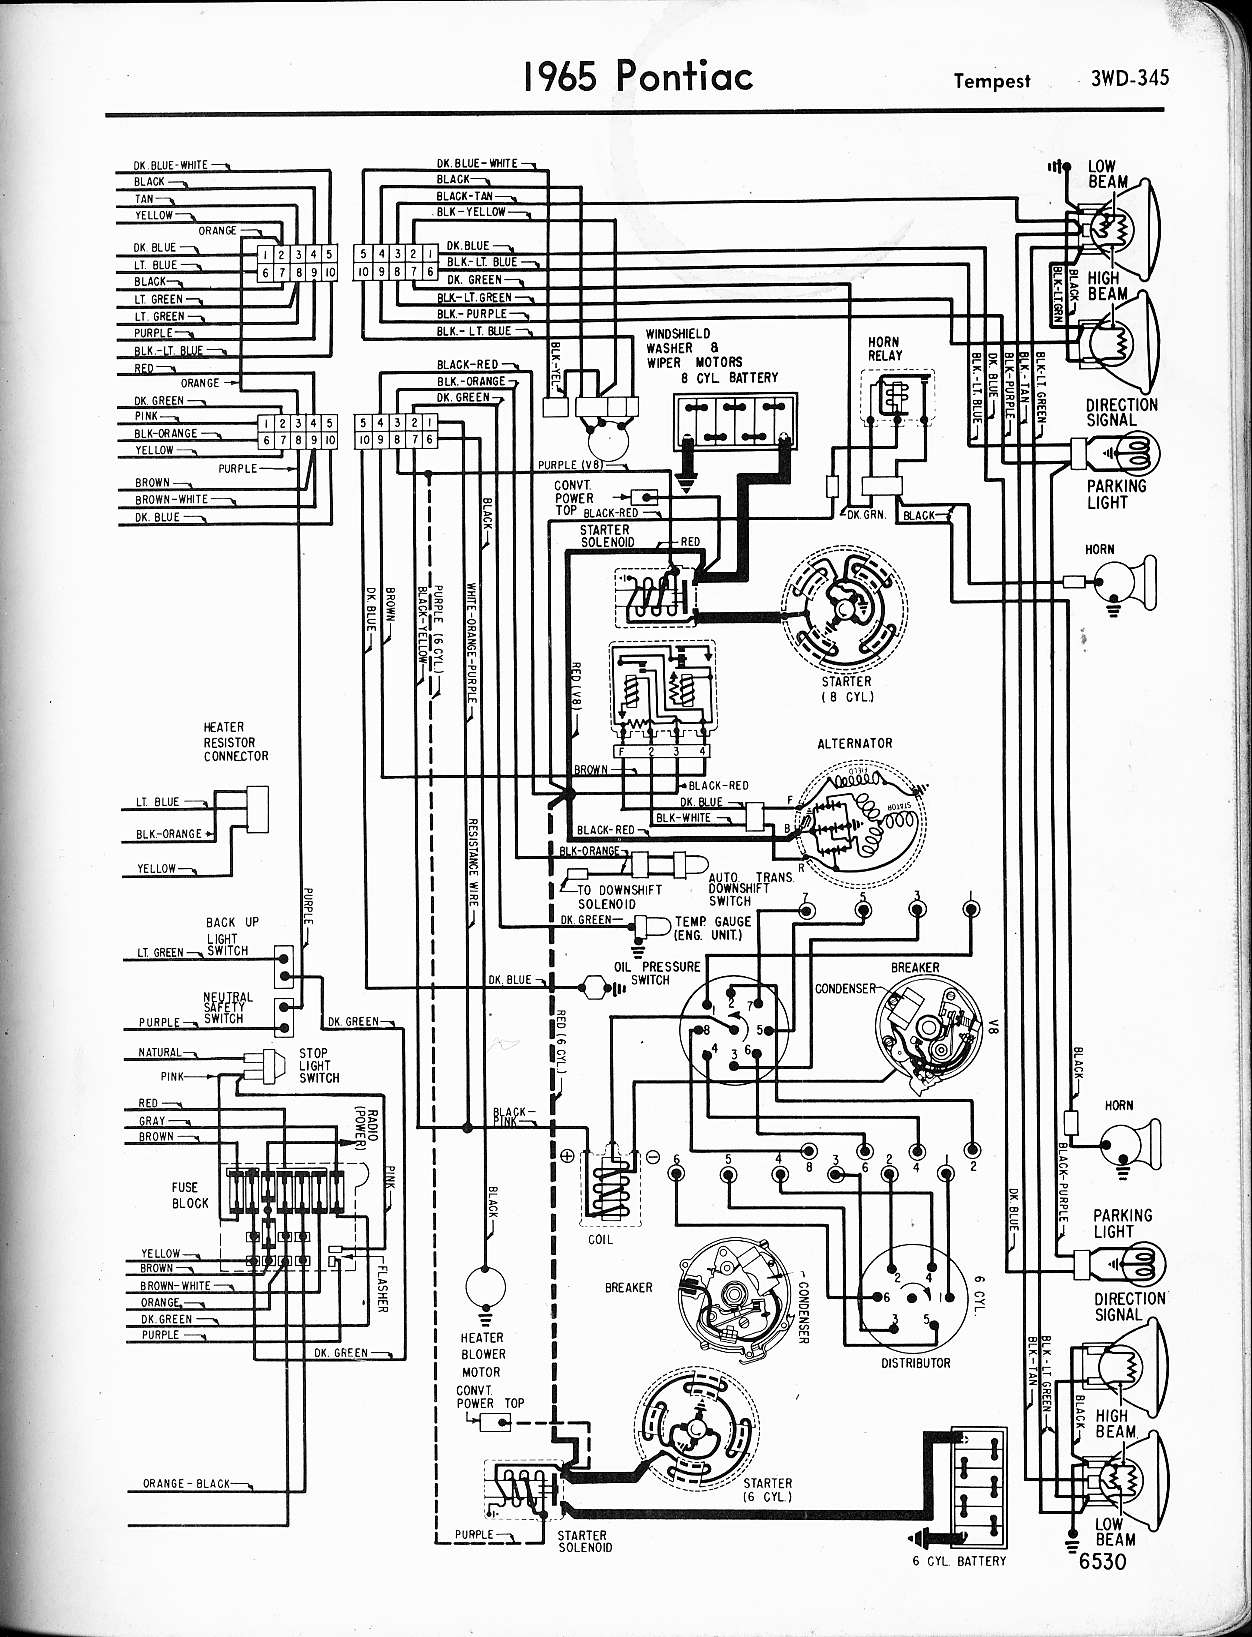 70 pontiac wiring diagram wiring diagram70 gto dash wiring diagram wiring diagram data schema1967 gto fuse box wiring diagram wiring diagram